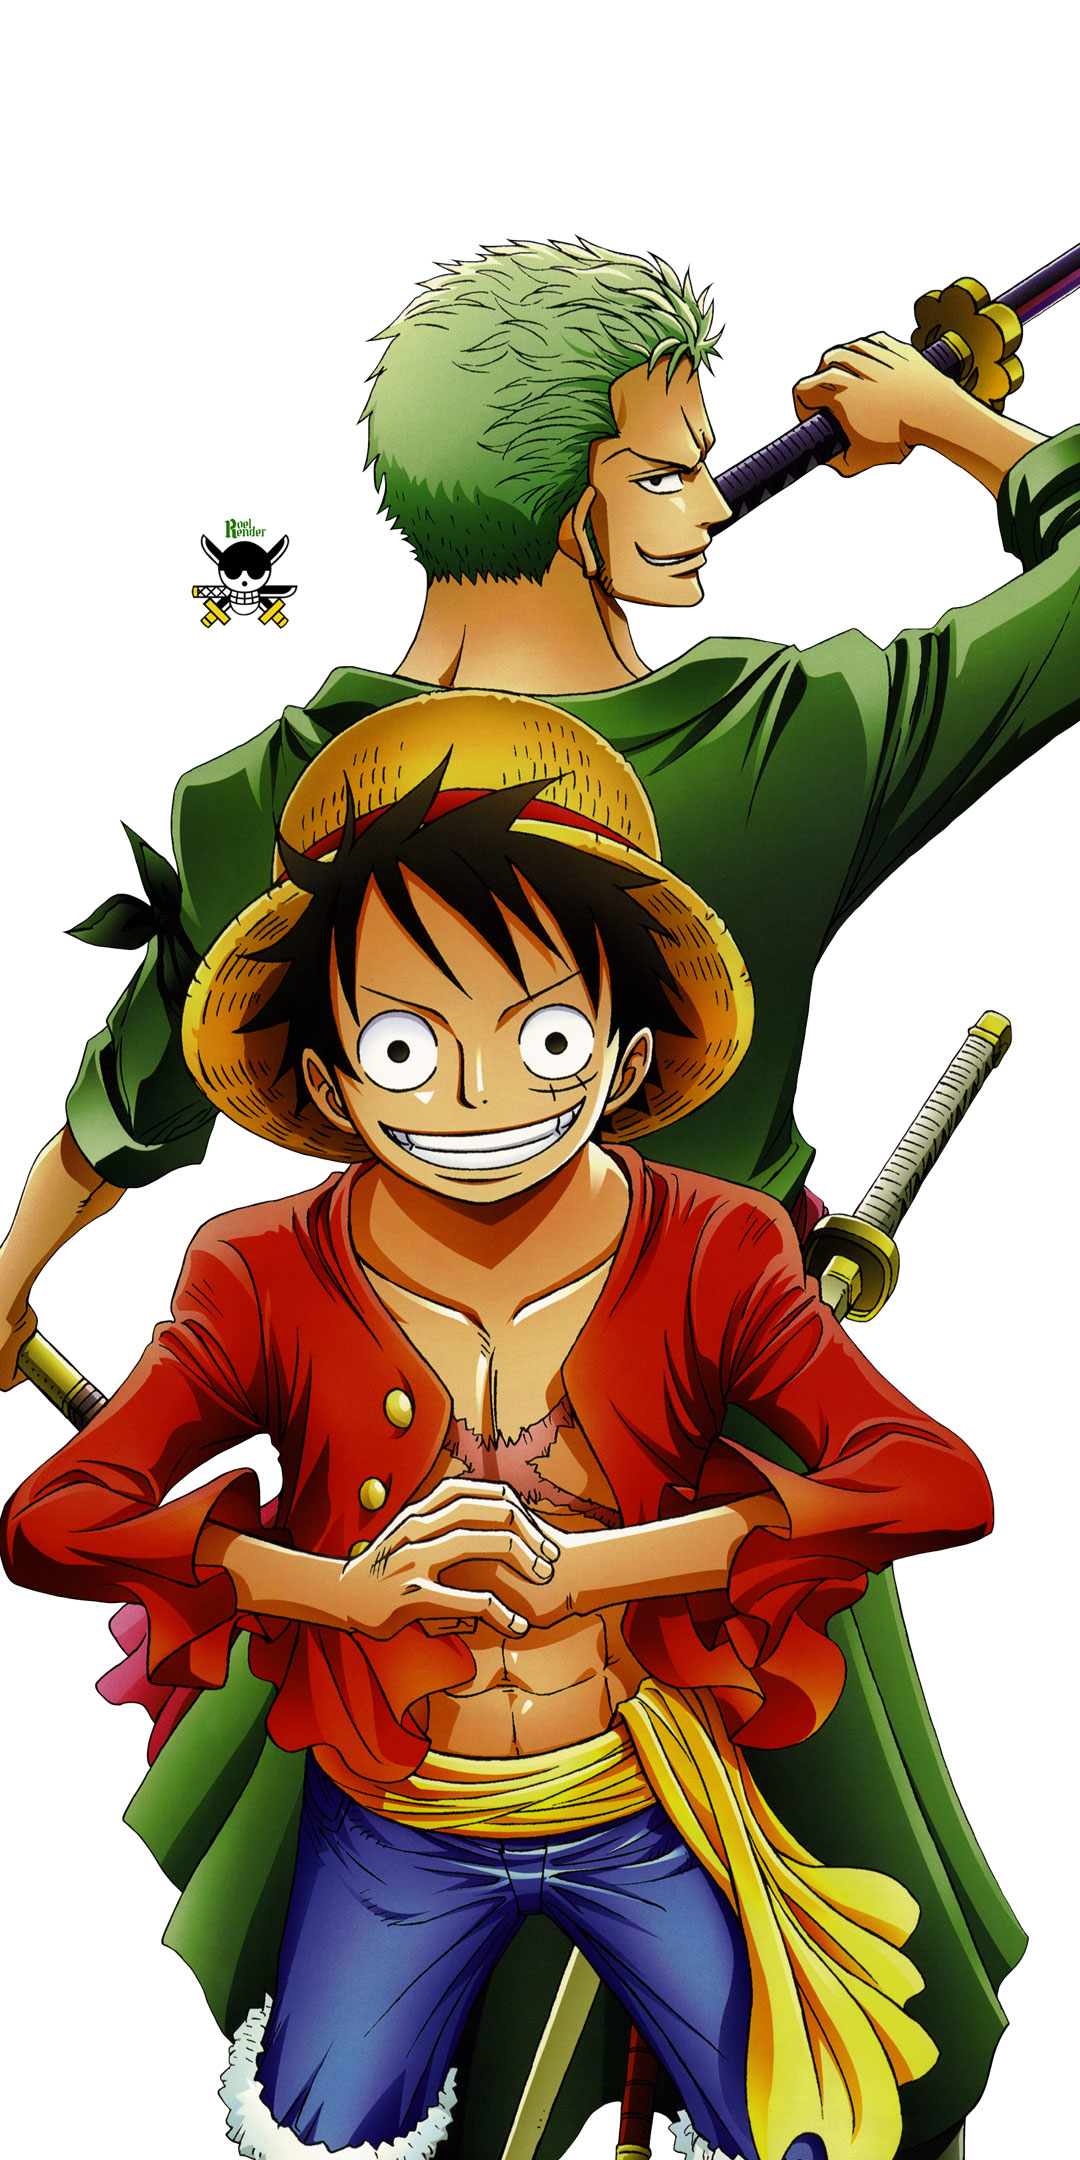 Anime One Piece 1080x2160 Wallpaper Id 712640 Mobile Abyss